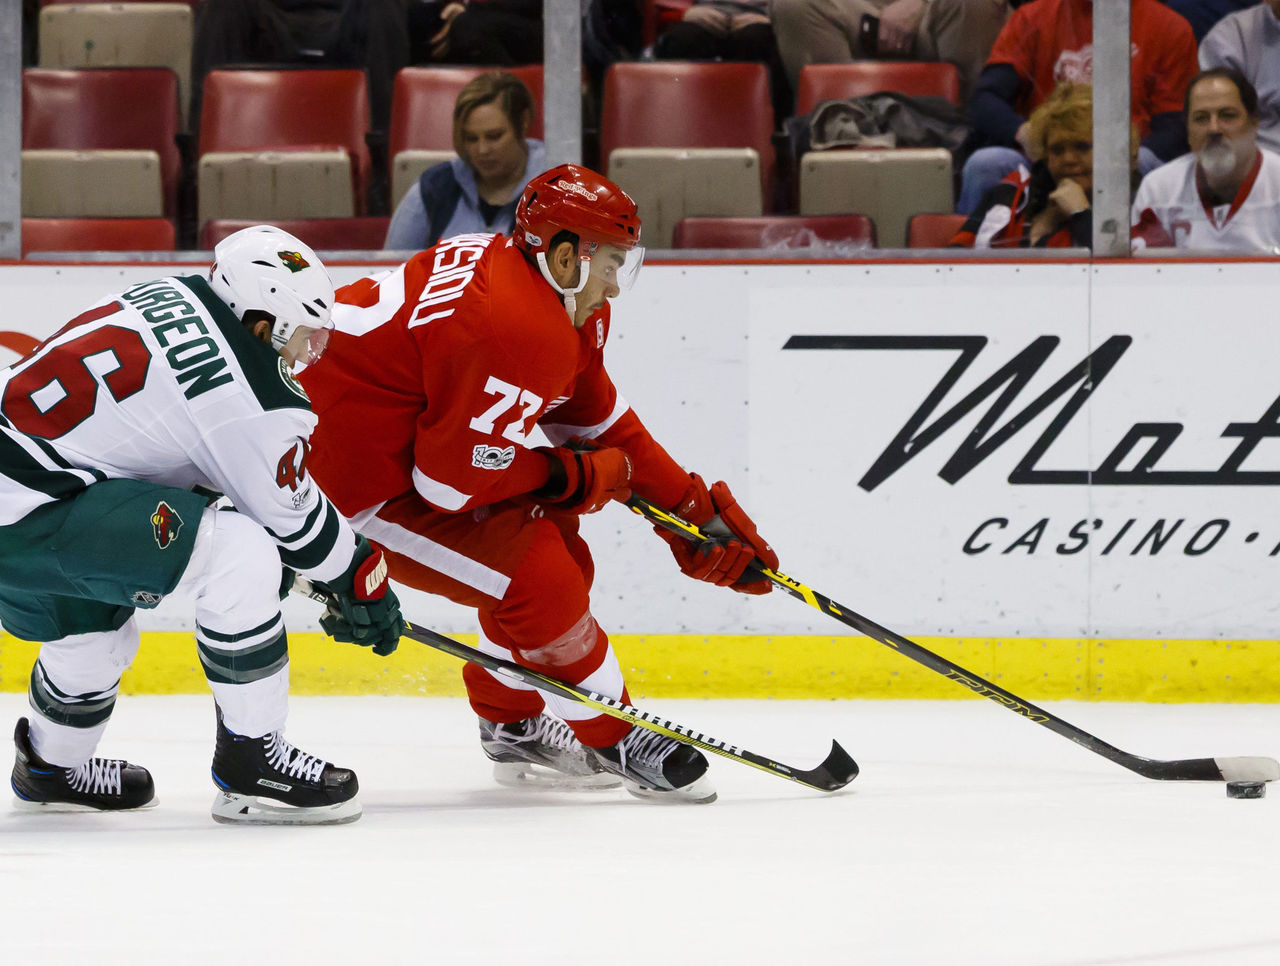 Cropped 2017 03 26t172339z 1134352970 nocid rtrmadp 3 nhl minnesota wild at detroit red wings